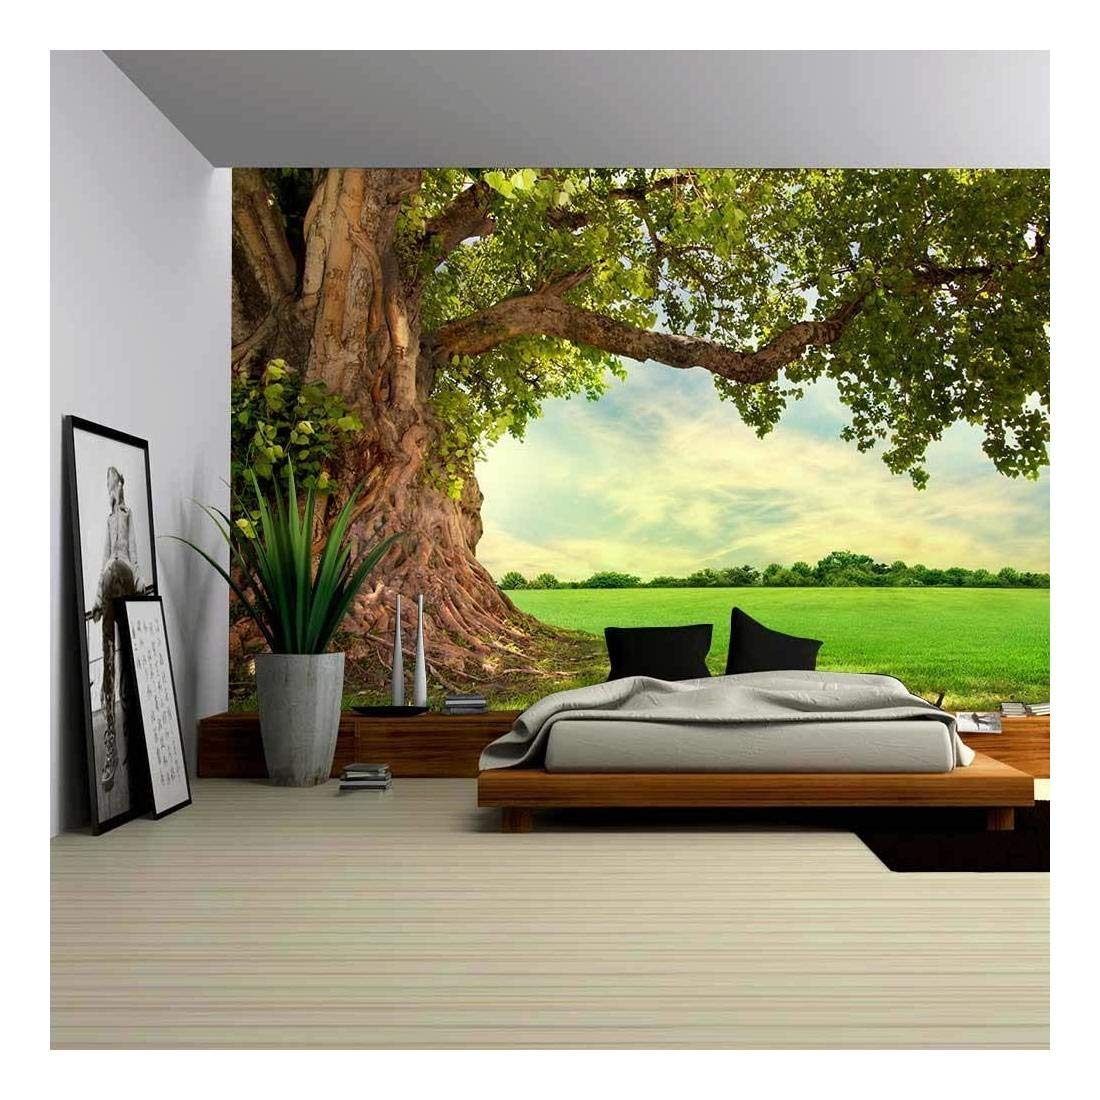 wall26 - Spring Meadow with Big Tree with Fresh Green Leaves - Removable Wall Mural | Self-Adhesive Large Wallpaper - 100x144 inches by wall26 (Image #1)